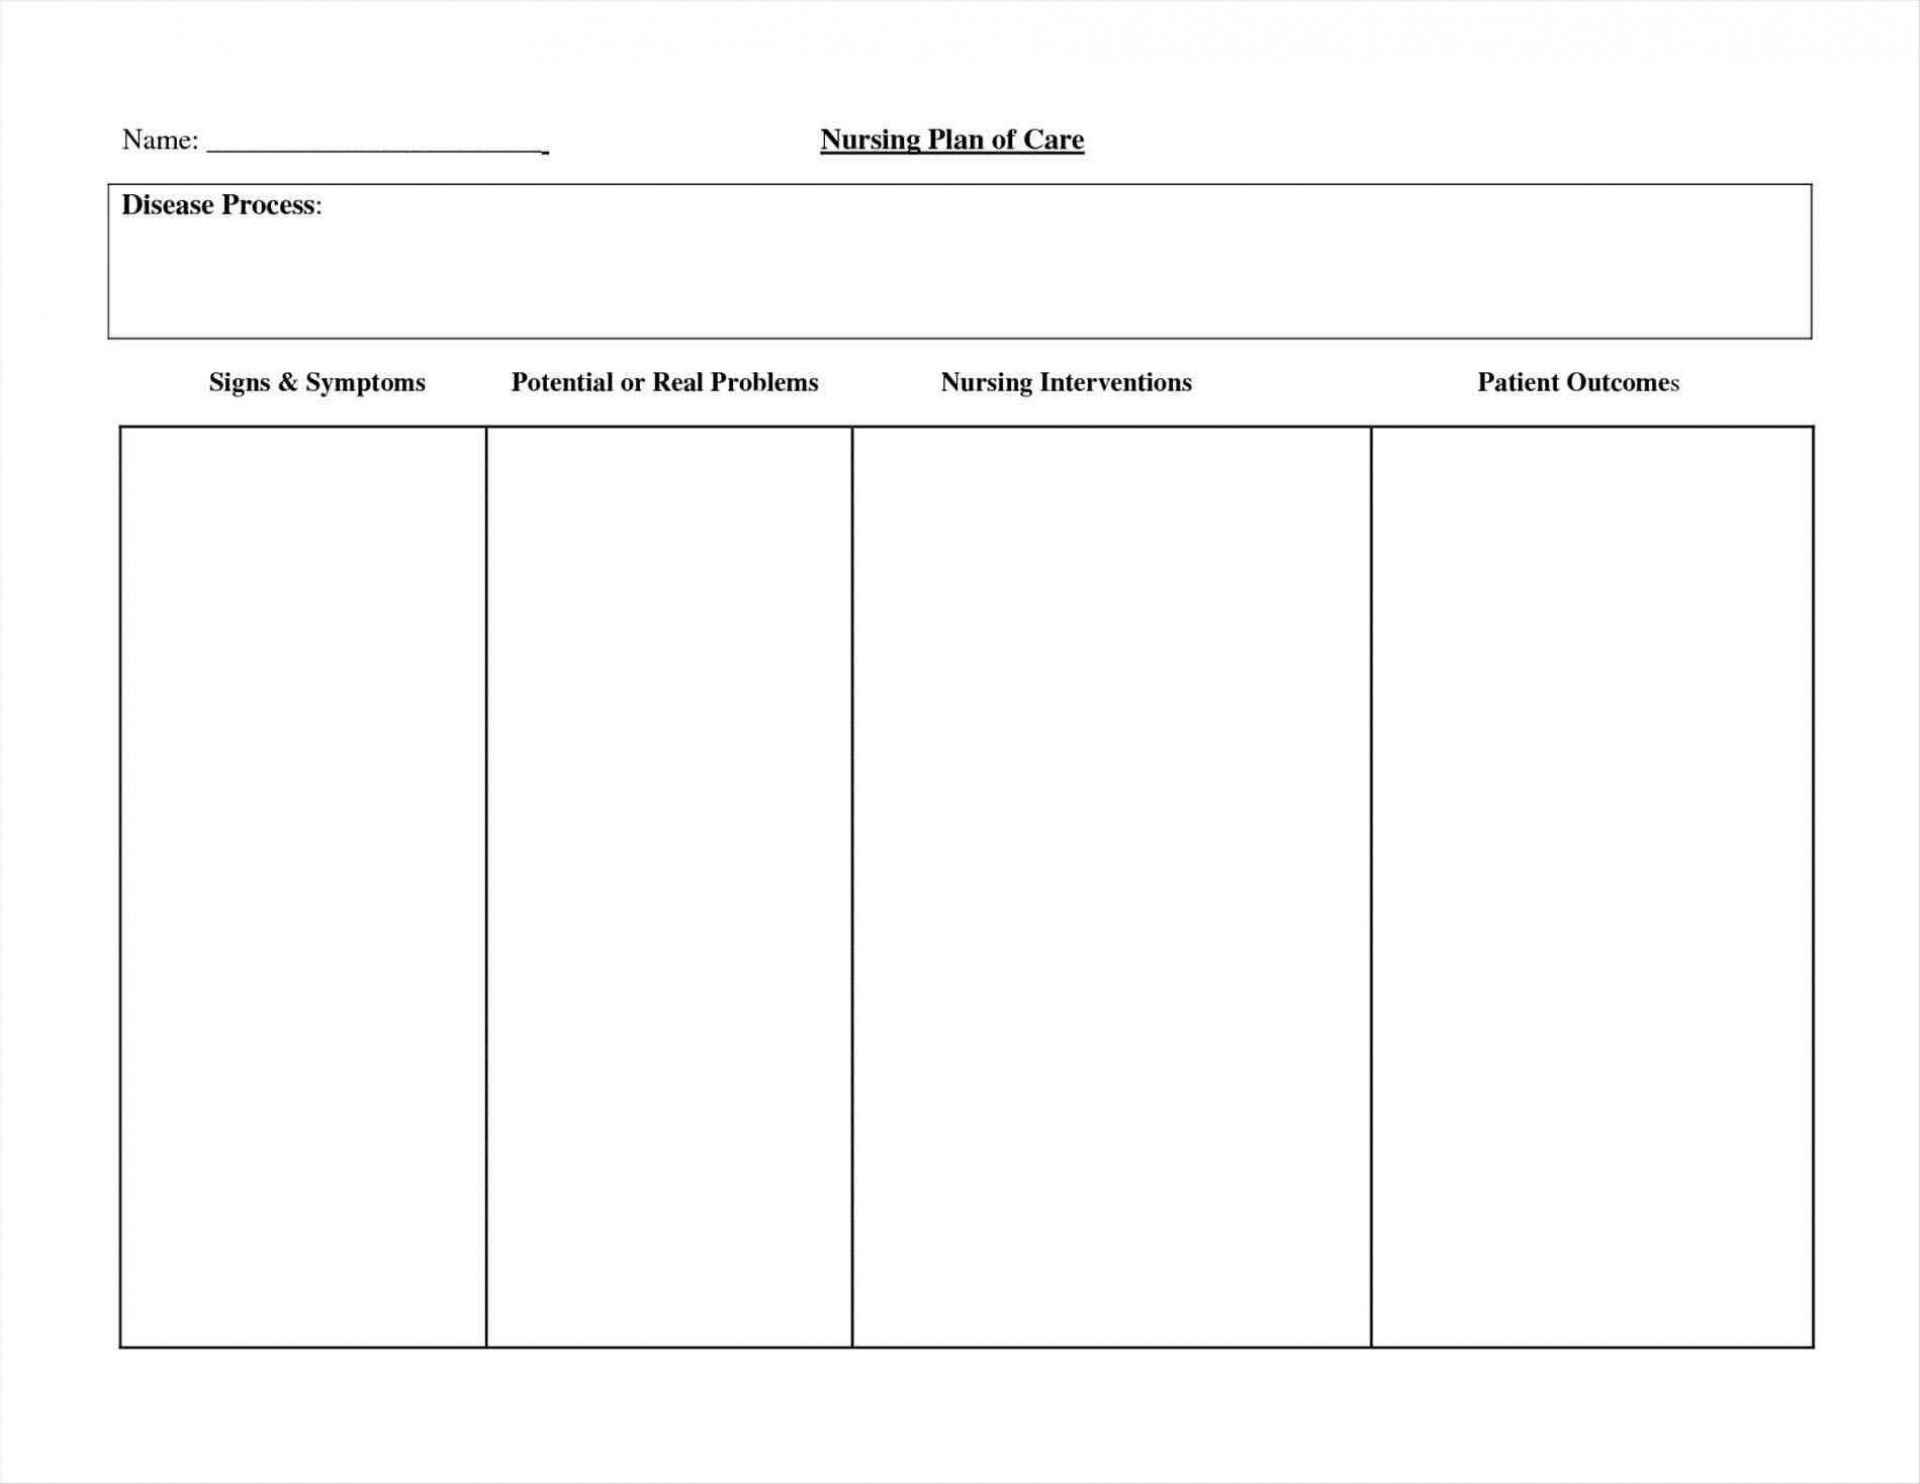 002 Impressive Nursing Care Plan Template Image  Free Pdf Download1920